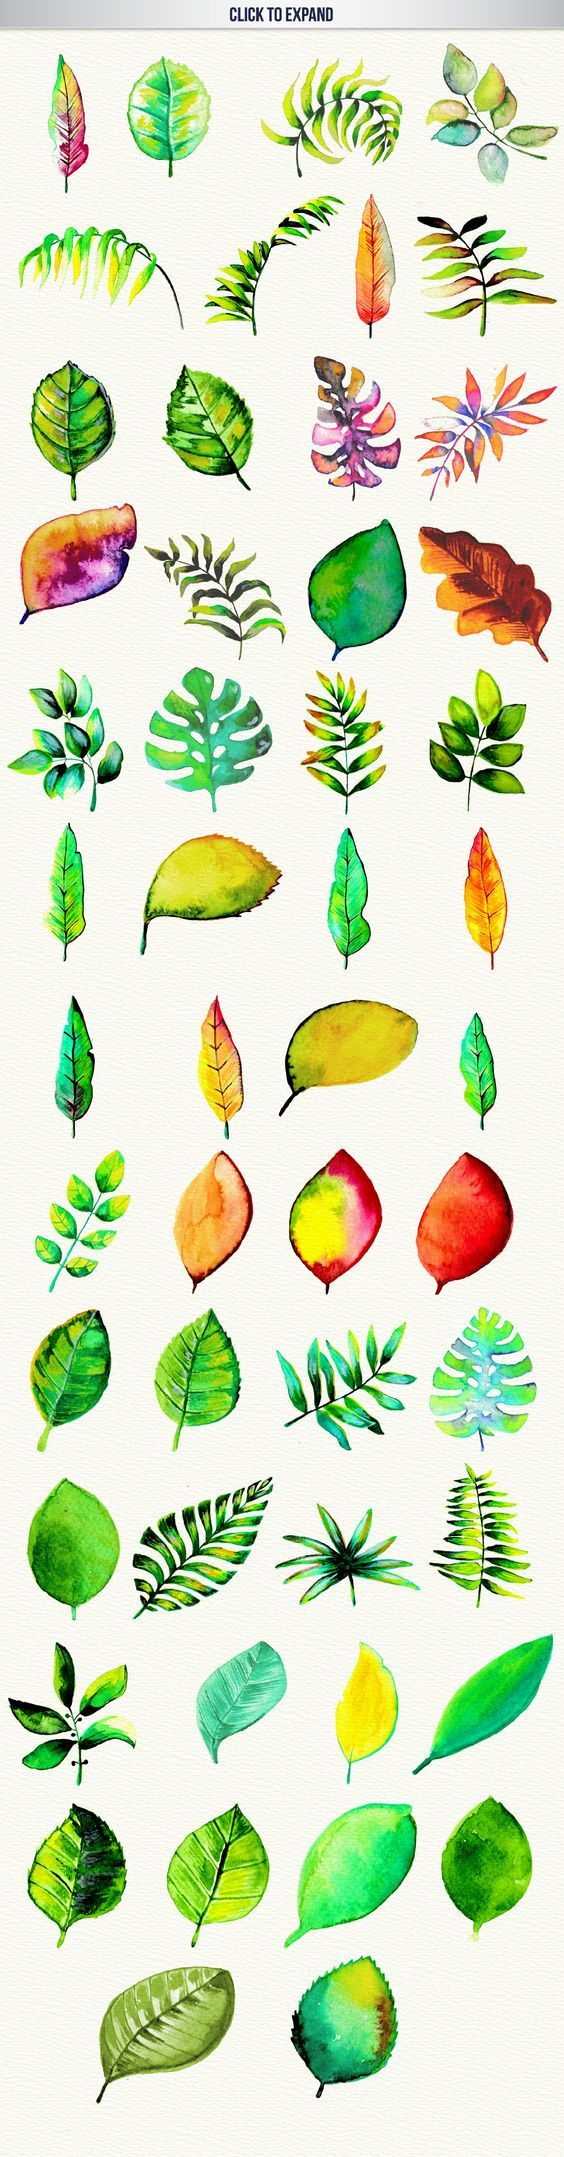 Some amazing watercolor leaf clip art images! Love the design of the big palm leaves. Wow! #design Download: https://creativemarket.com/desenart/293115-50-High-Res-Watercolor-Leaves/?u=nexion: